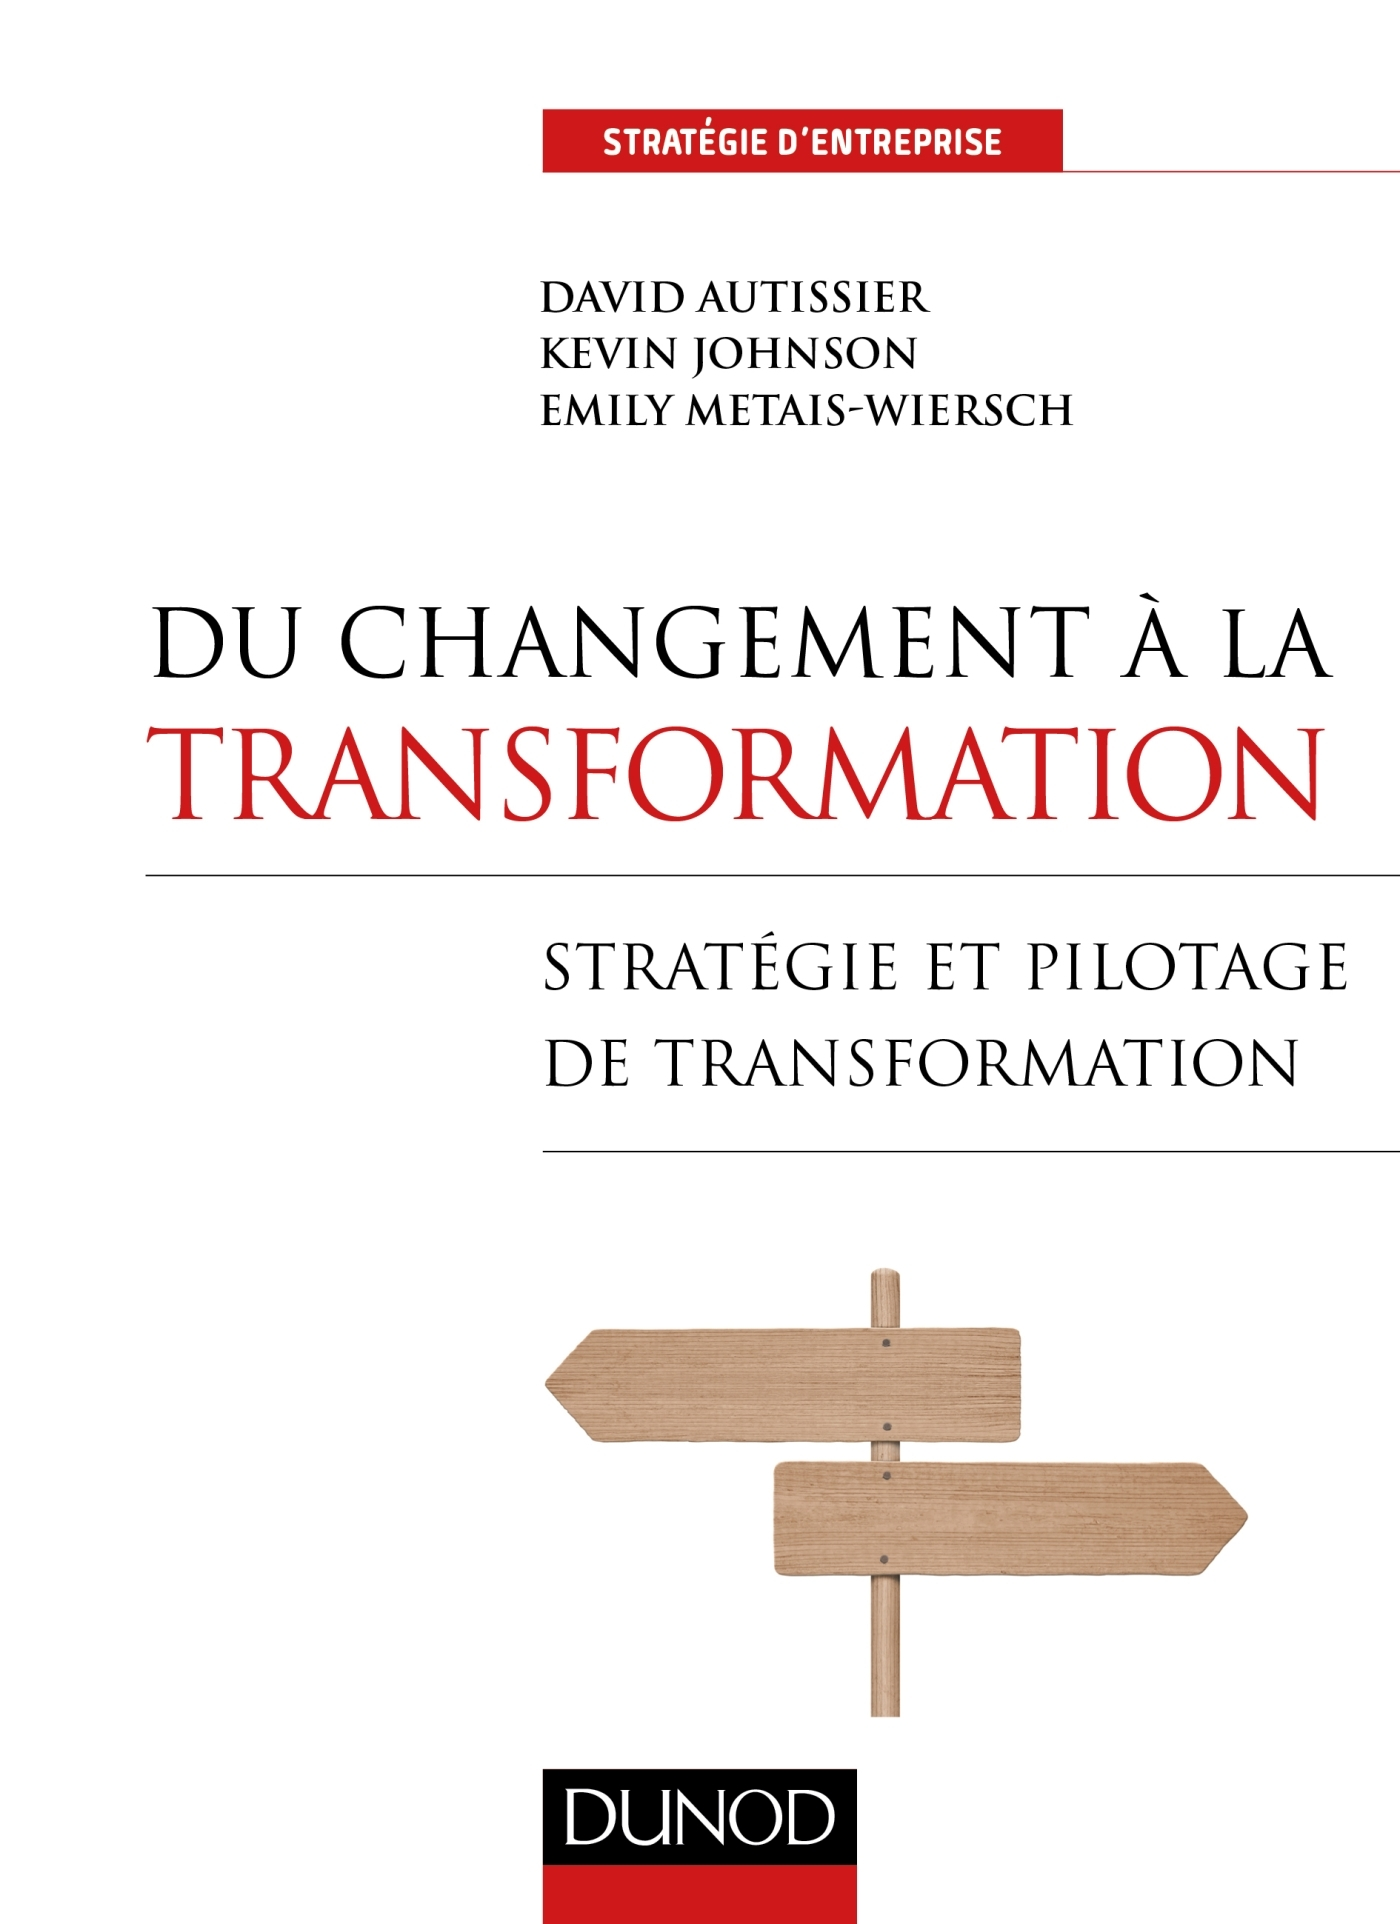 DU CHANGEMENT A LA TRANSFORMATION - STRATEGIE ET PILOTAGE DE TRANSFORMATION